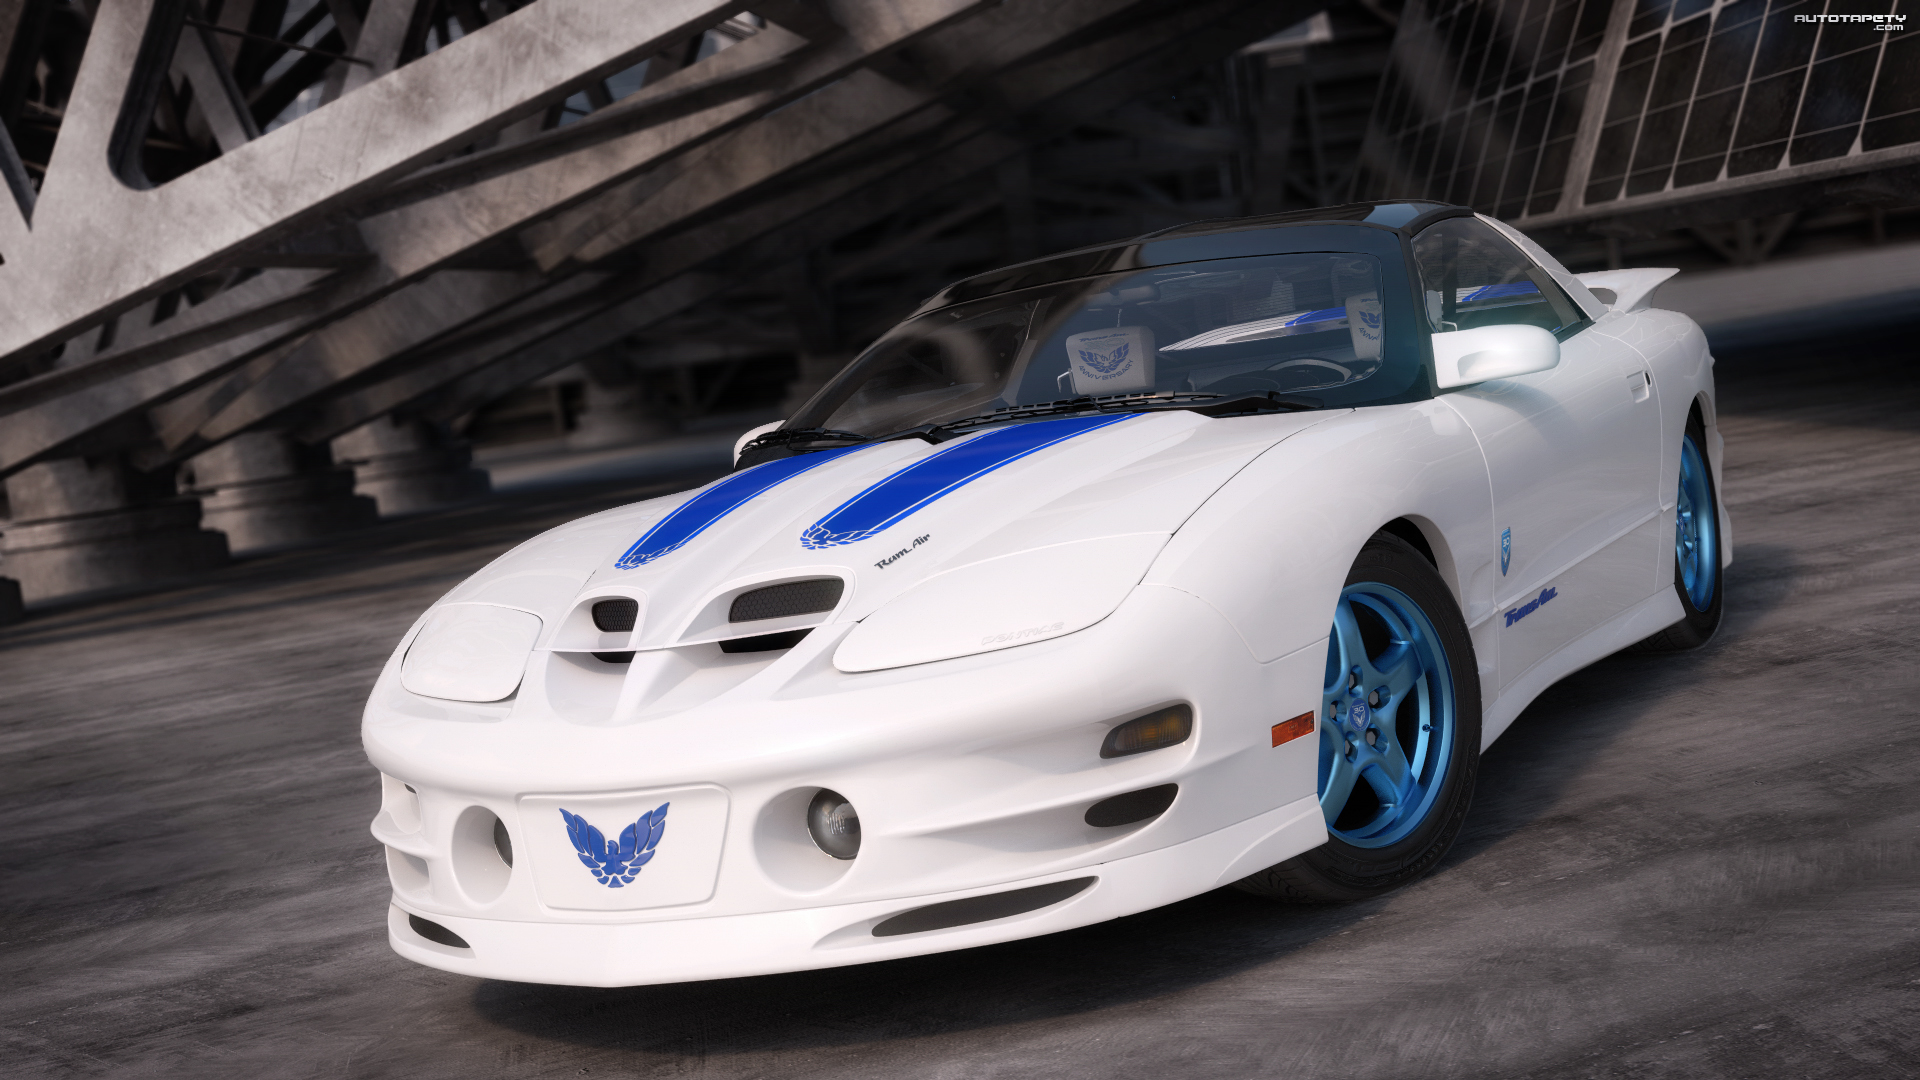 Pontiac Trans Am WS6, 30th Anniversary Limited Edition, 1999